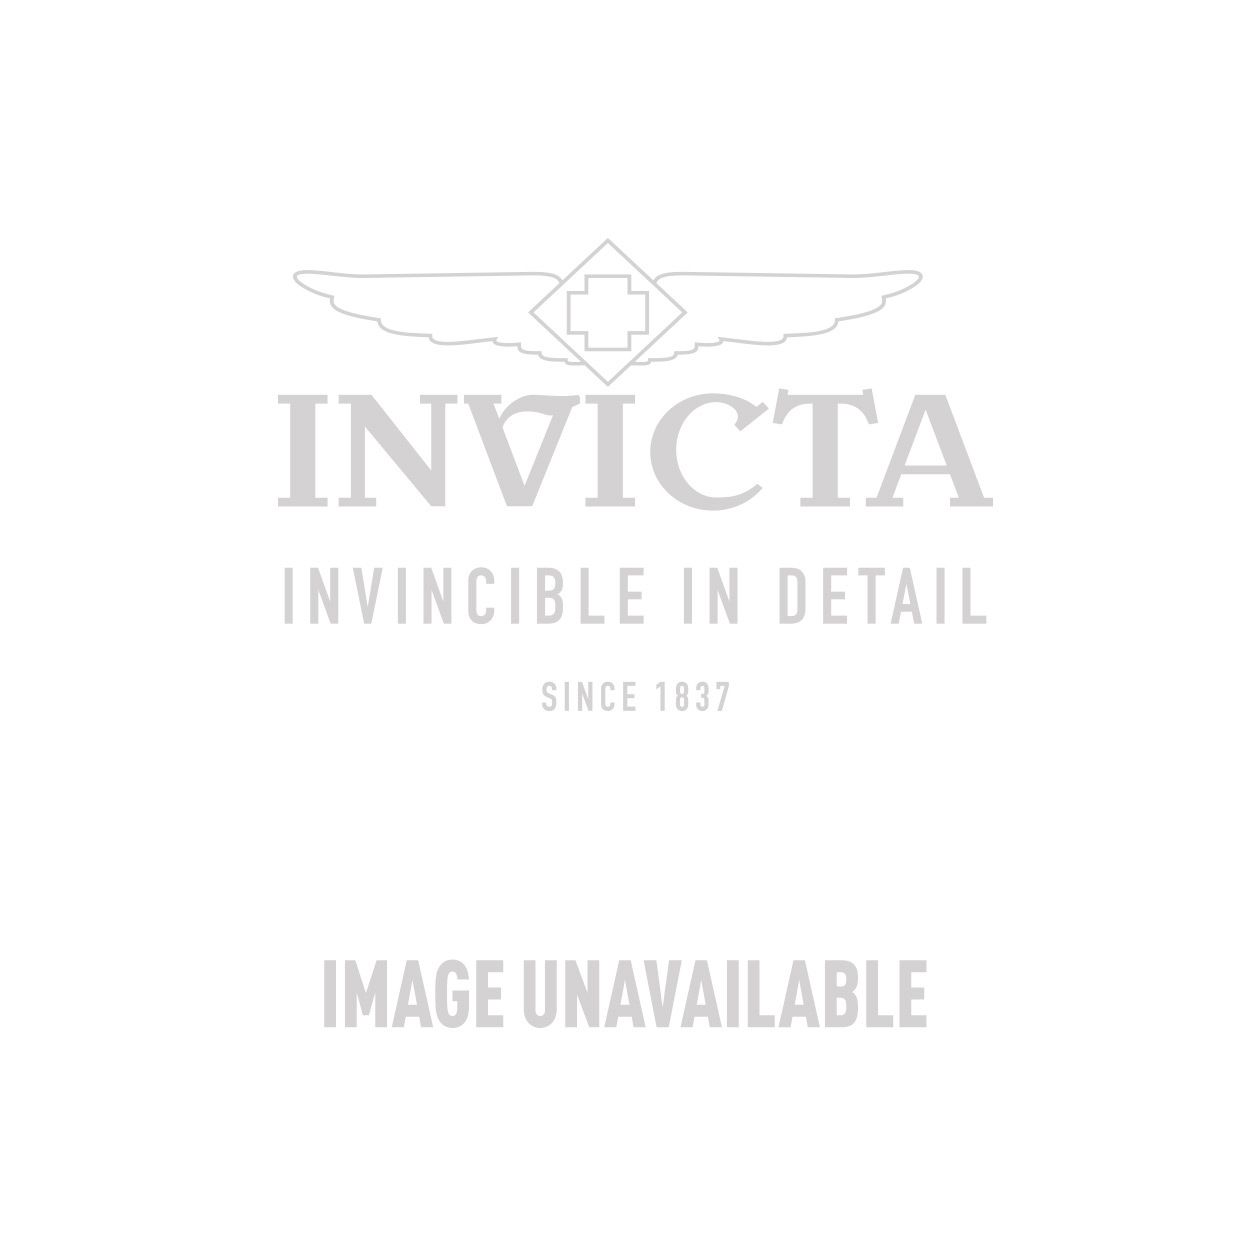 Invicta S. Coifman Swiss Movement Quartz Watch - Gold case with Gold tone Stainless Steel band - Model SC0338